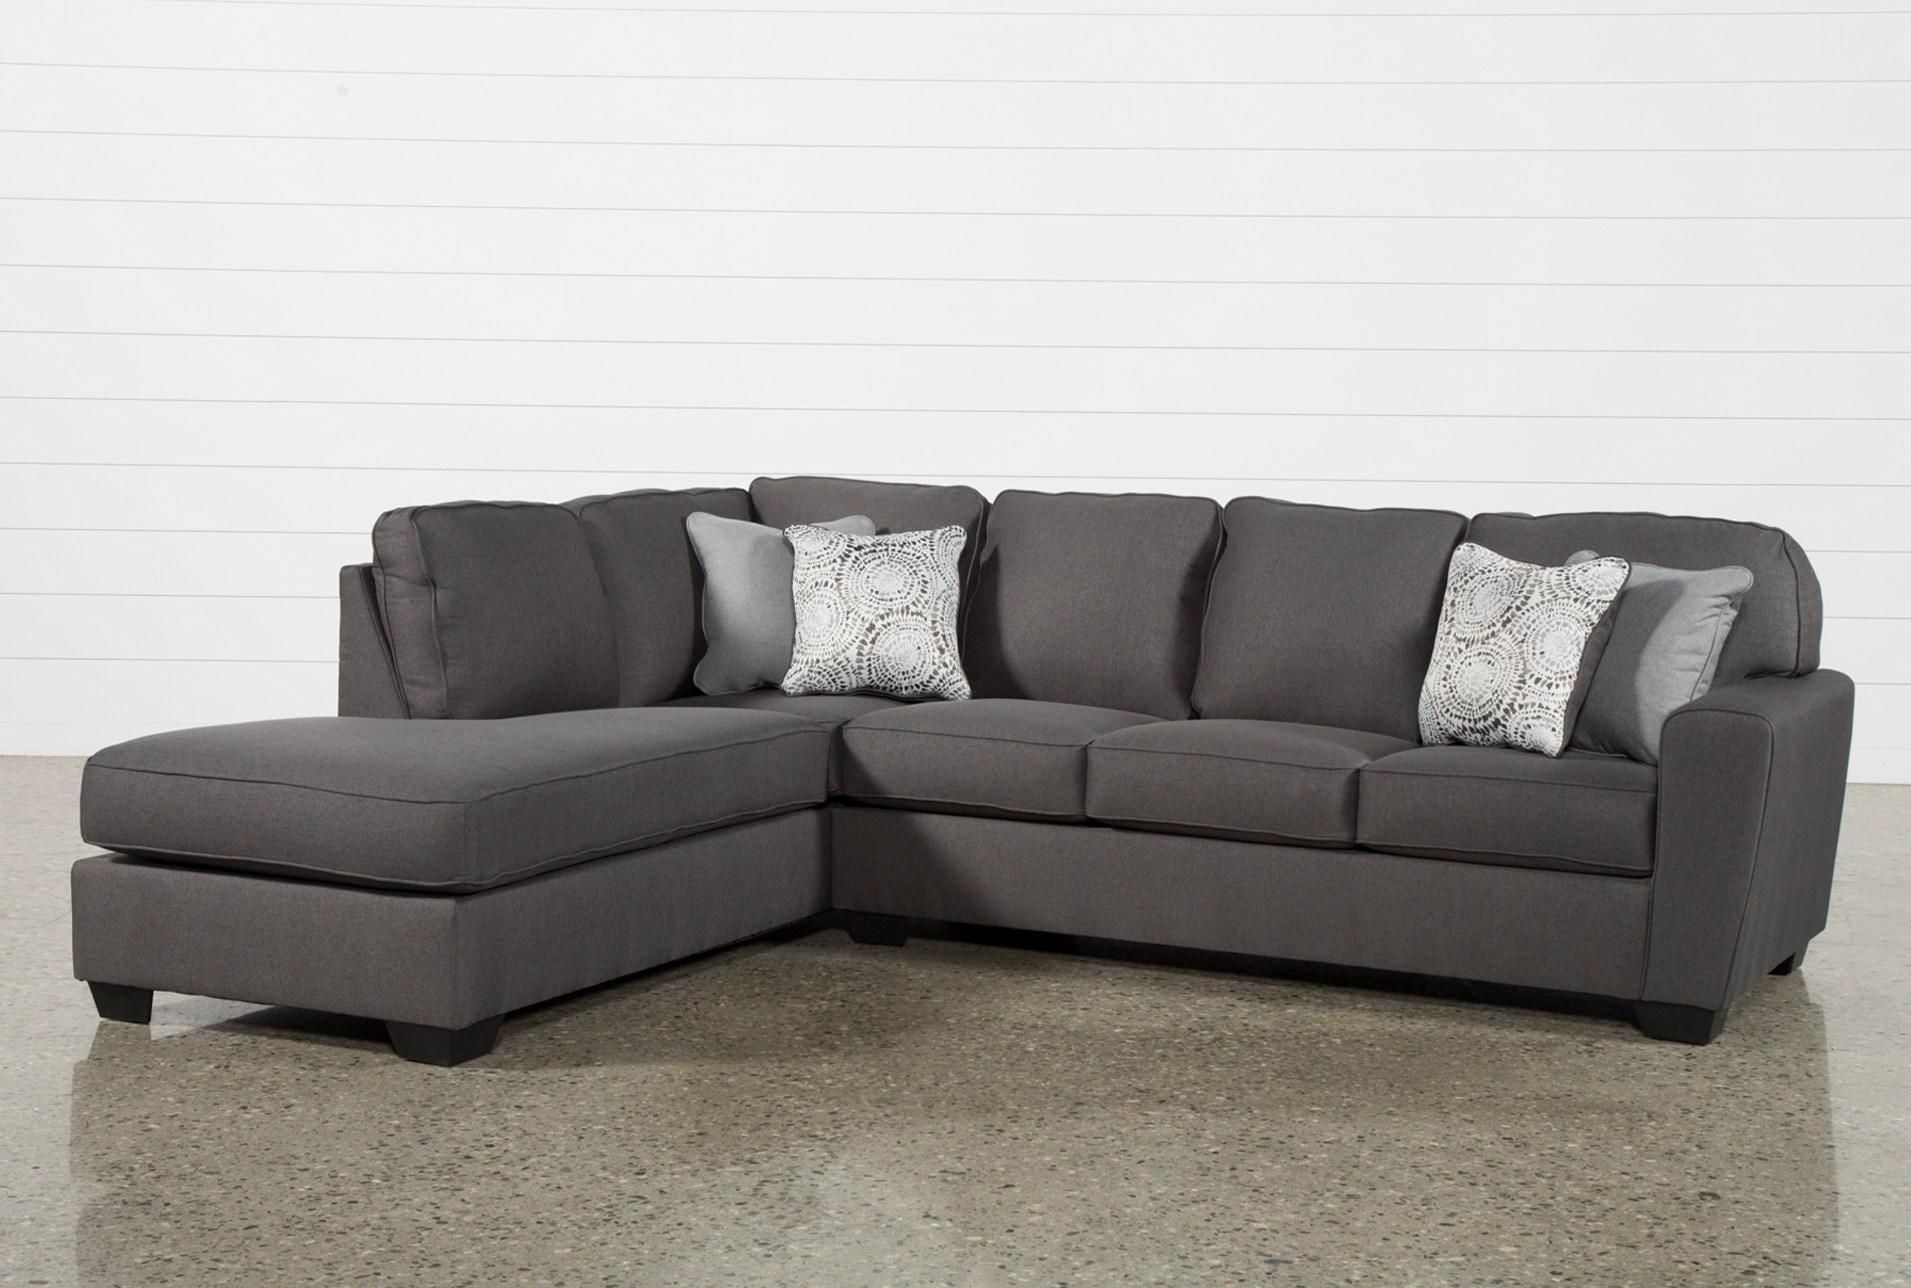 Mcdade Graphite 2 Piece Sectional W/laf Chaise | Graphite, Living Pertaining To Kerri 2 Piece Sectionals With Raf Chaise (Image 24 of 25)